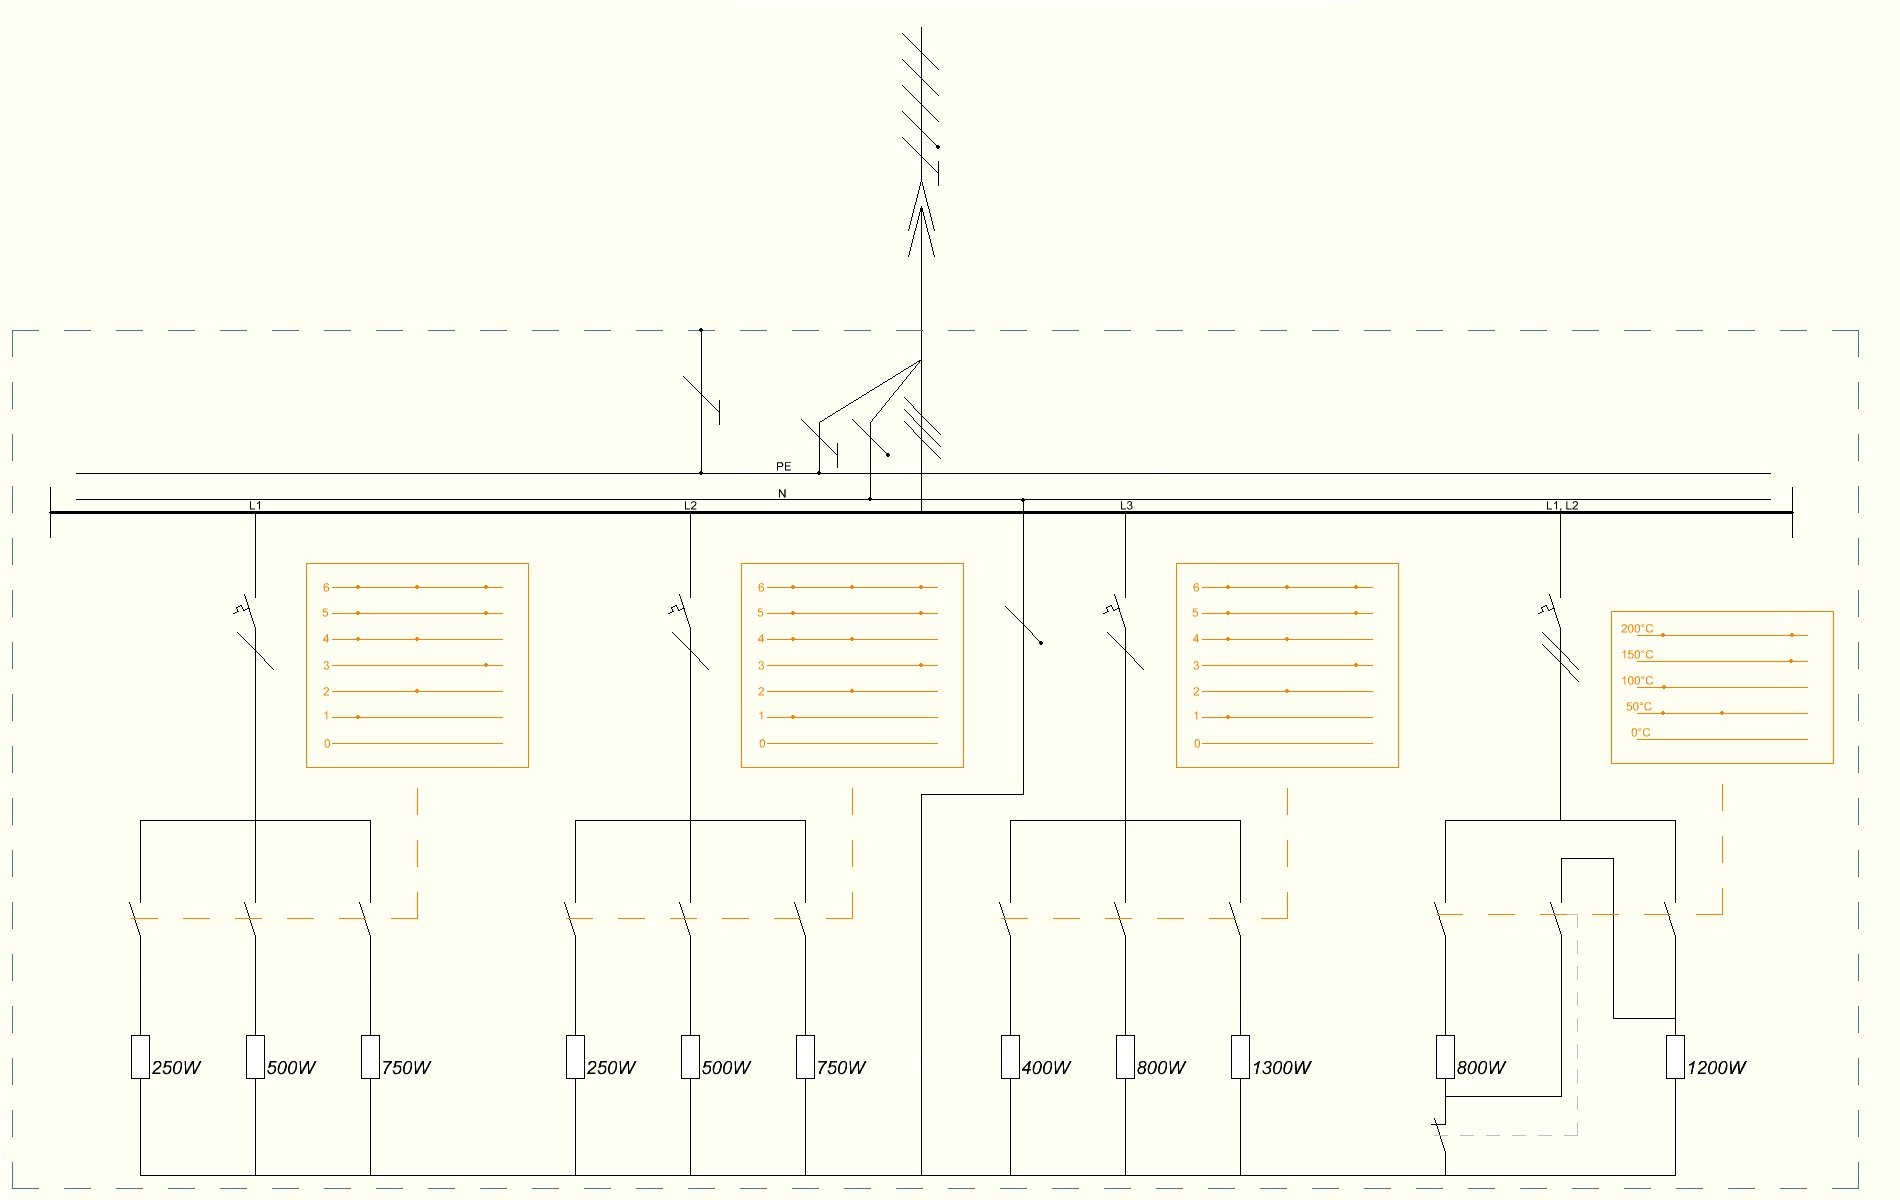 Electrical Stove Wiring Diagram Real Frigidaire File Schematic Of Wikimedia Rh Commons Org Electric Burner